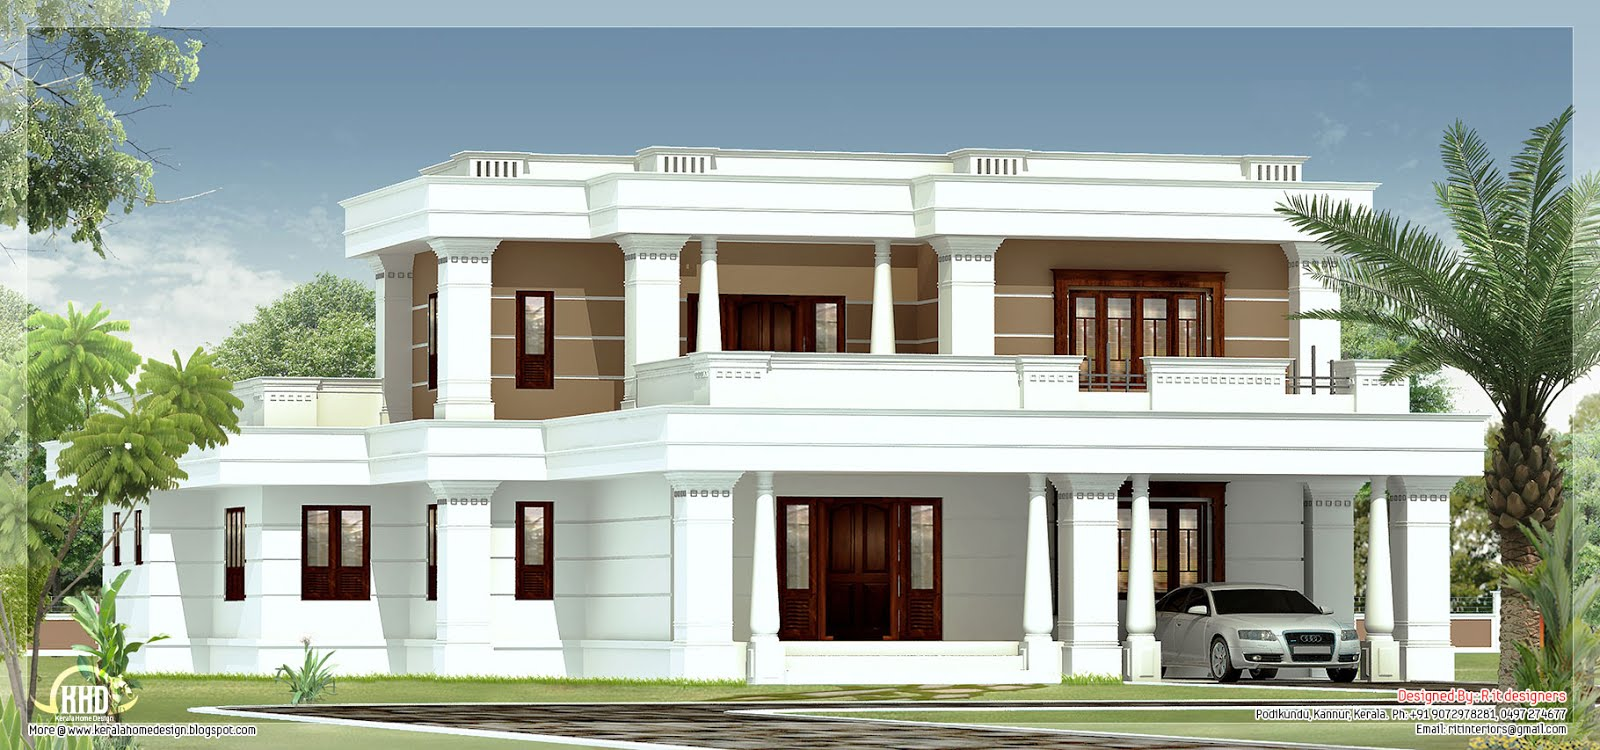 Award Winning House Designs Floor Plans On 1035 Sq Ft House Plans